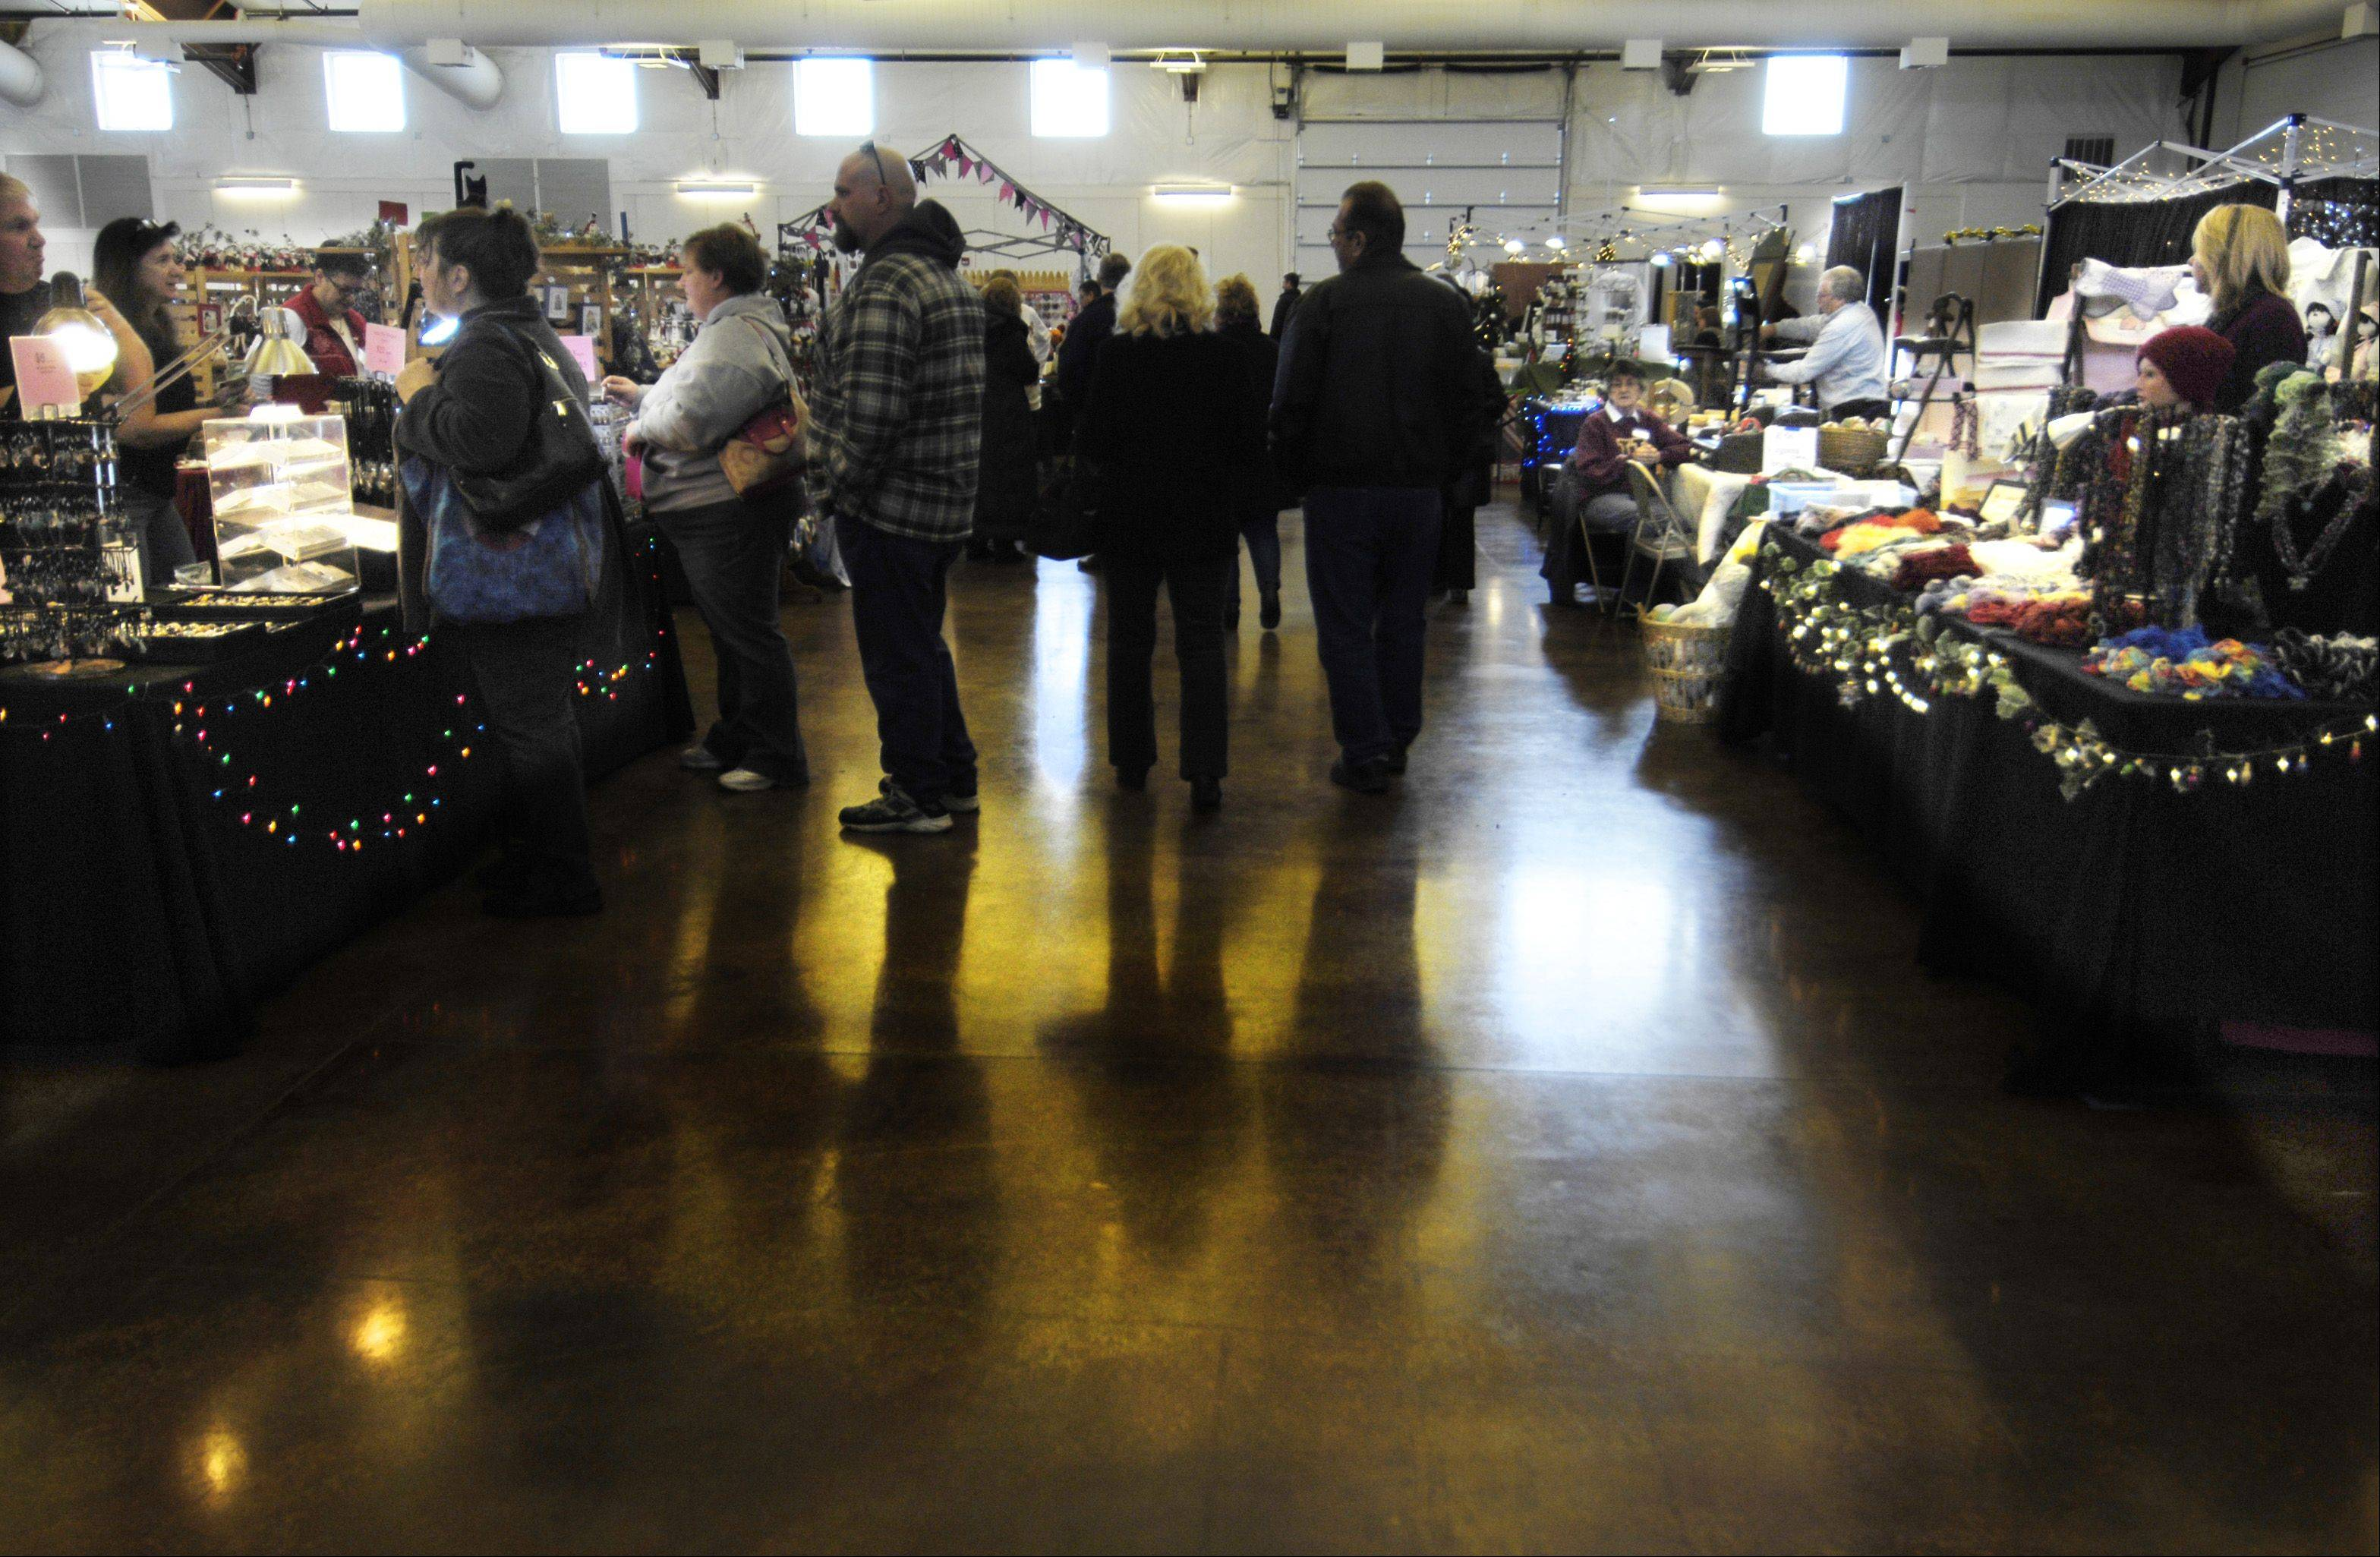 Browsers and buyers wandered through two rooms of booths Sunday at the Christmas on the Fox Arts and Crafts Show at the Kane County Fairgrounds in St. Charles.